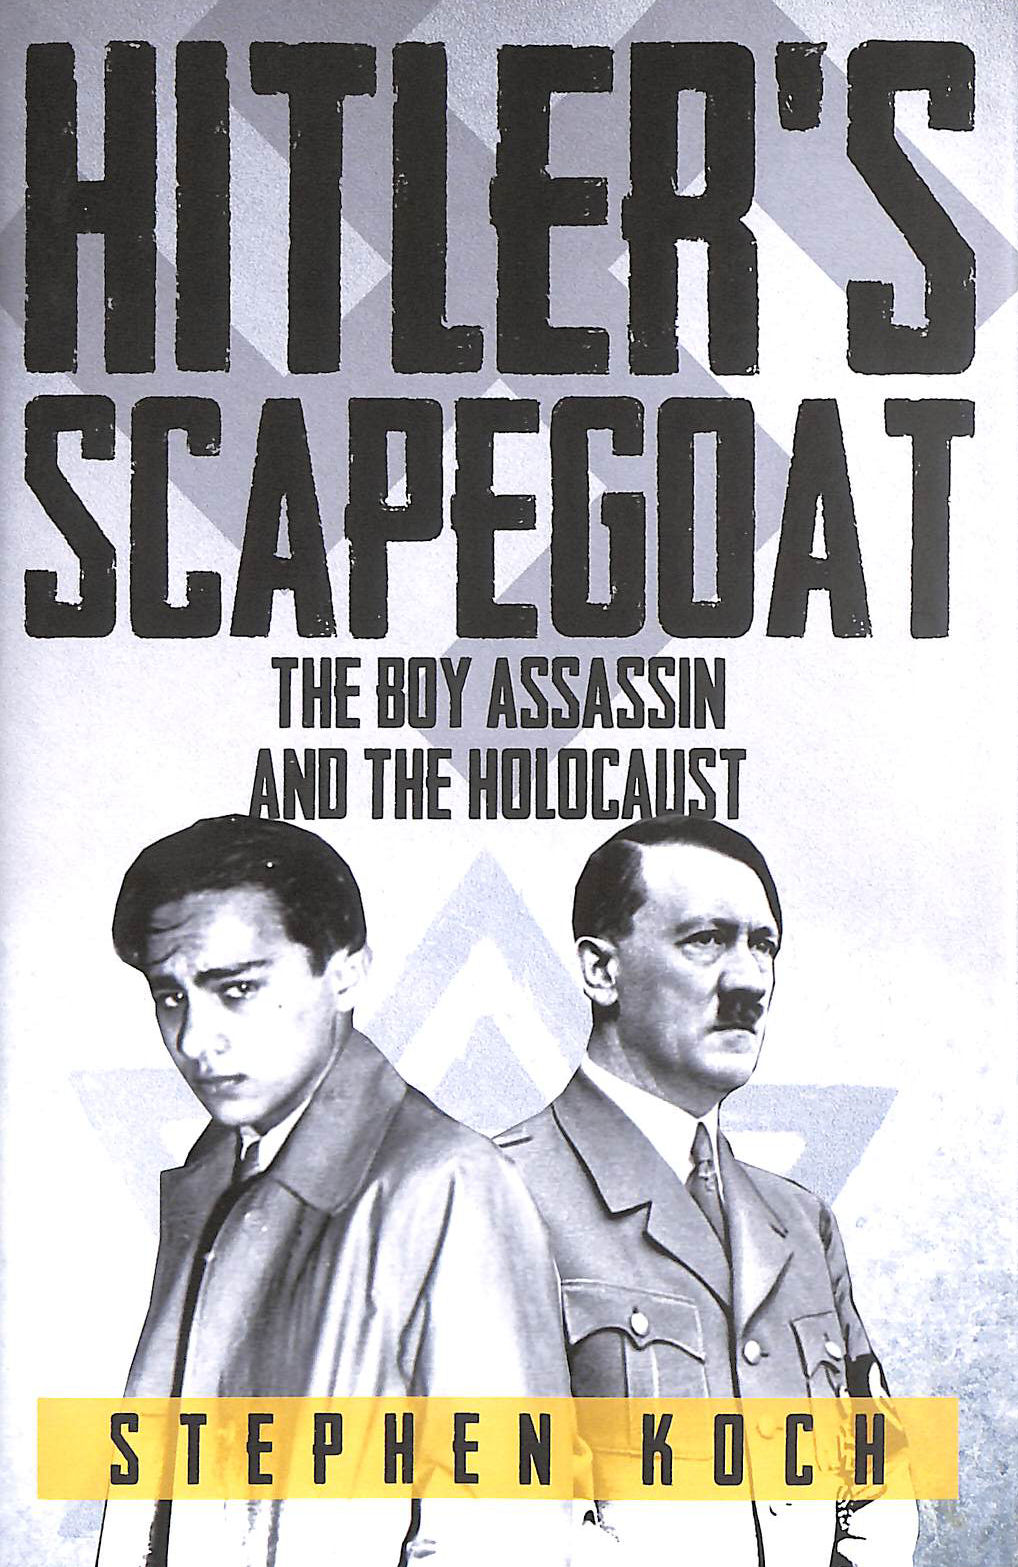 Image for Hitler's Scapegoat: The Boy Assassin And The Holocaust